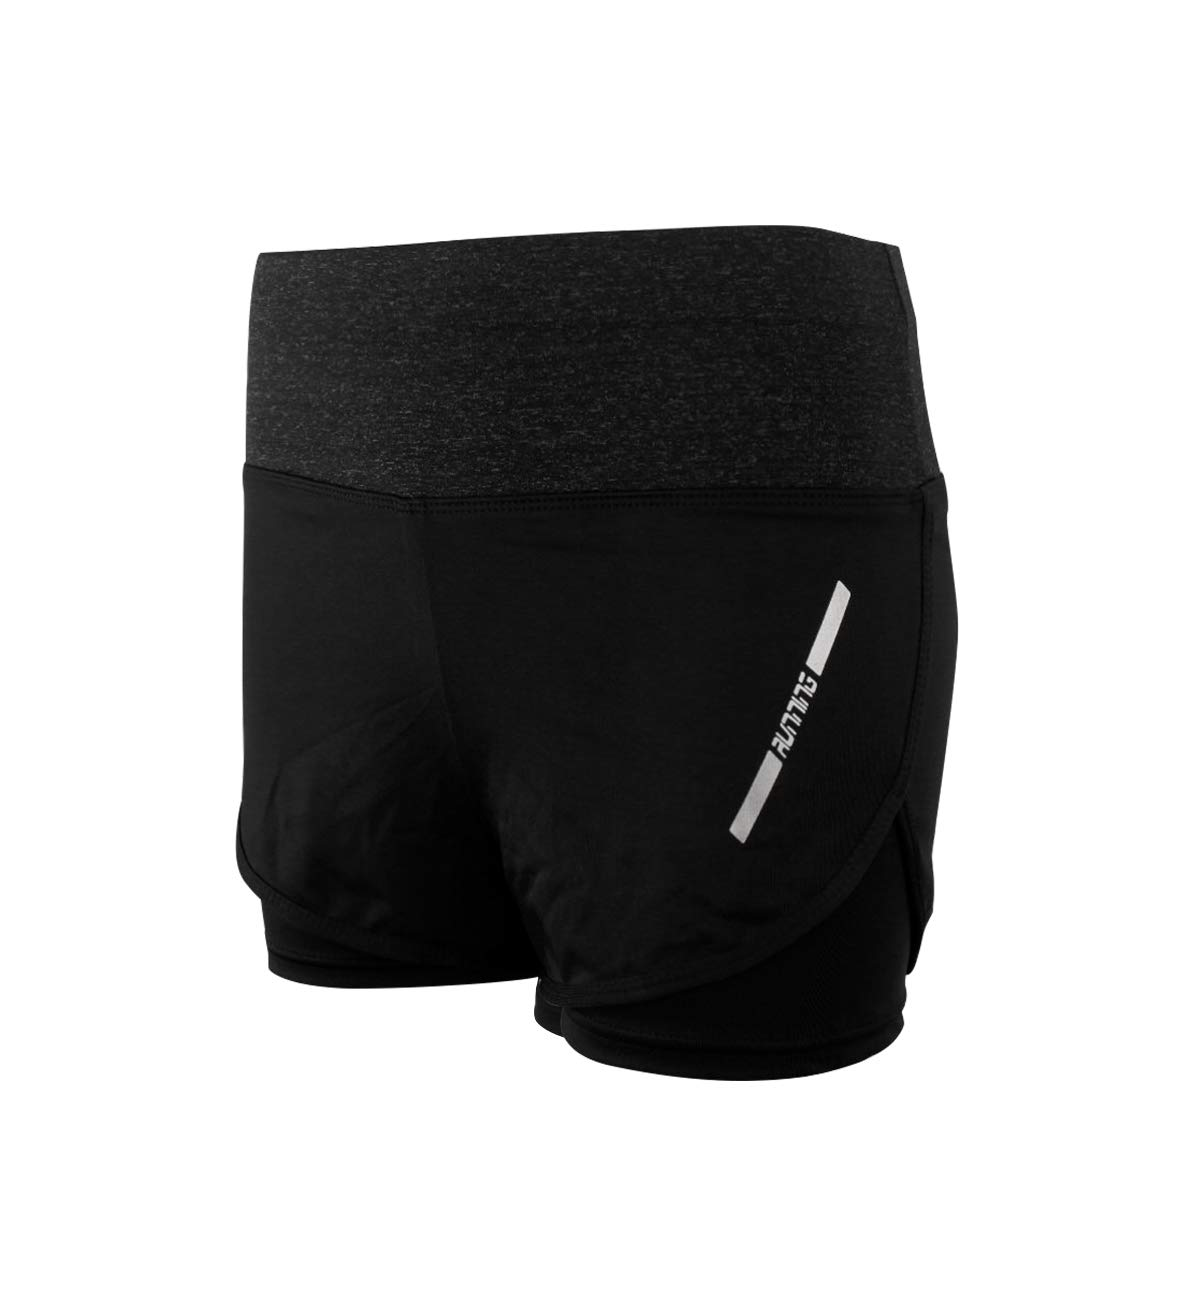 2 in 1 Running Shorts for Women High Waist Workout Shorts with Liner Double Layer Gym Shorts Quick Dry US Size 2-14 Grey L